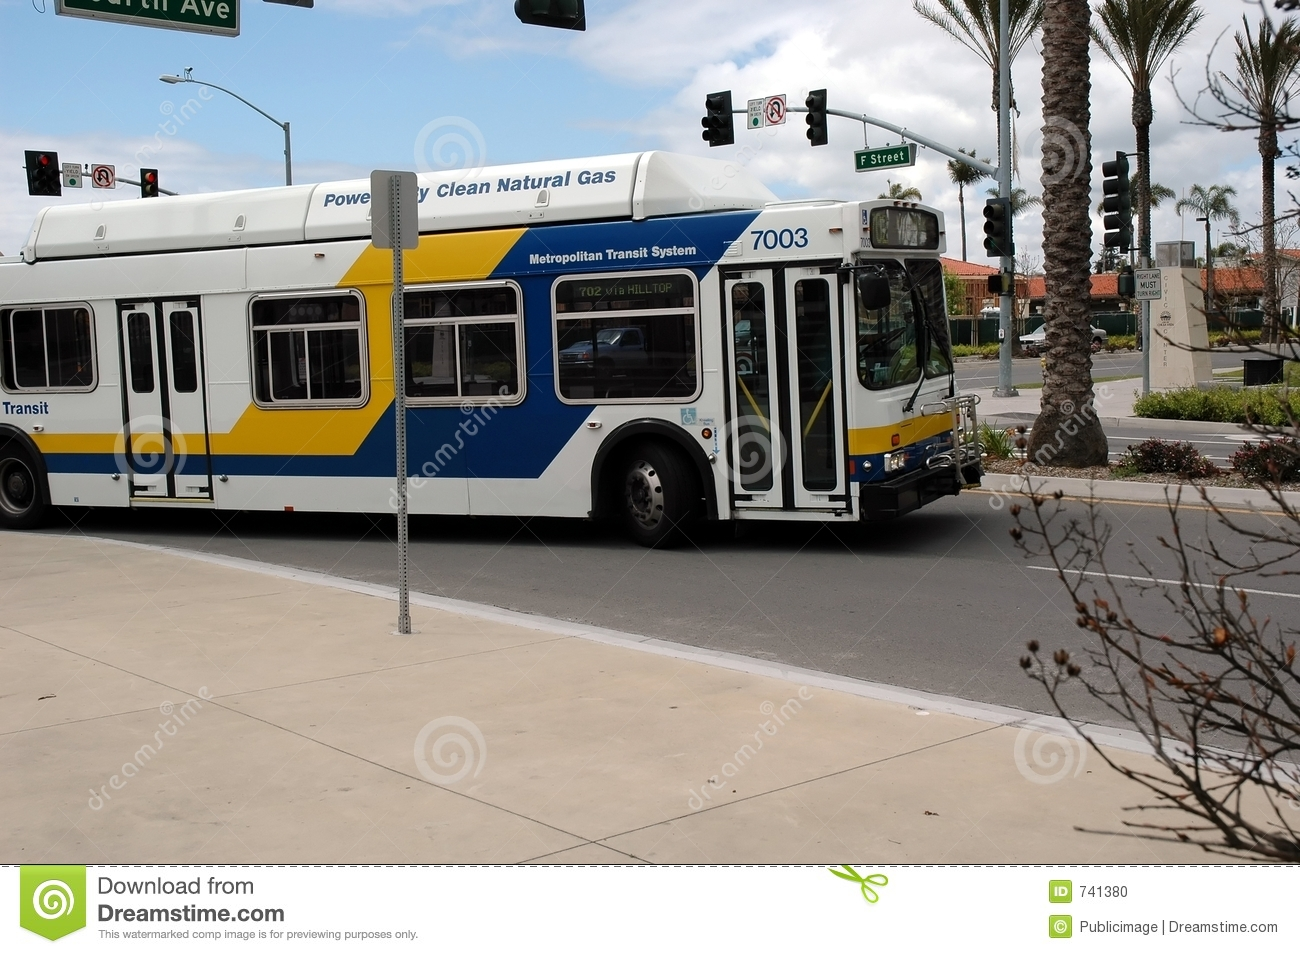 Gas Prices In California >> Clean Air Transit Bus Stock Photo - Image: 741380